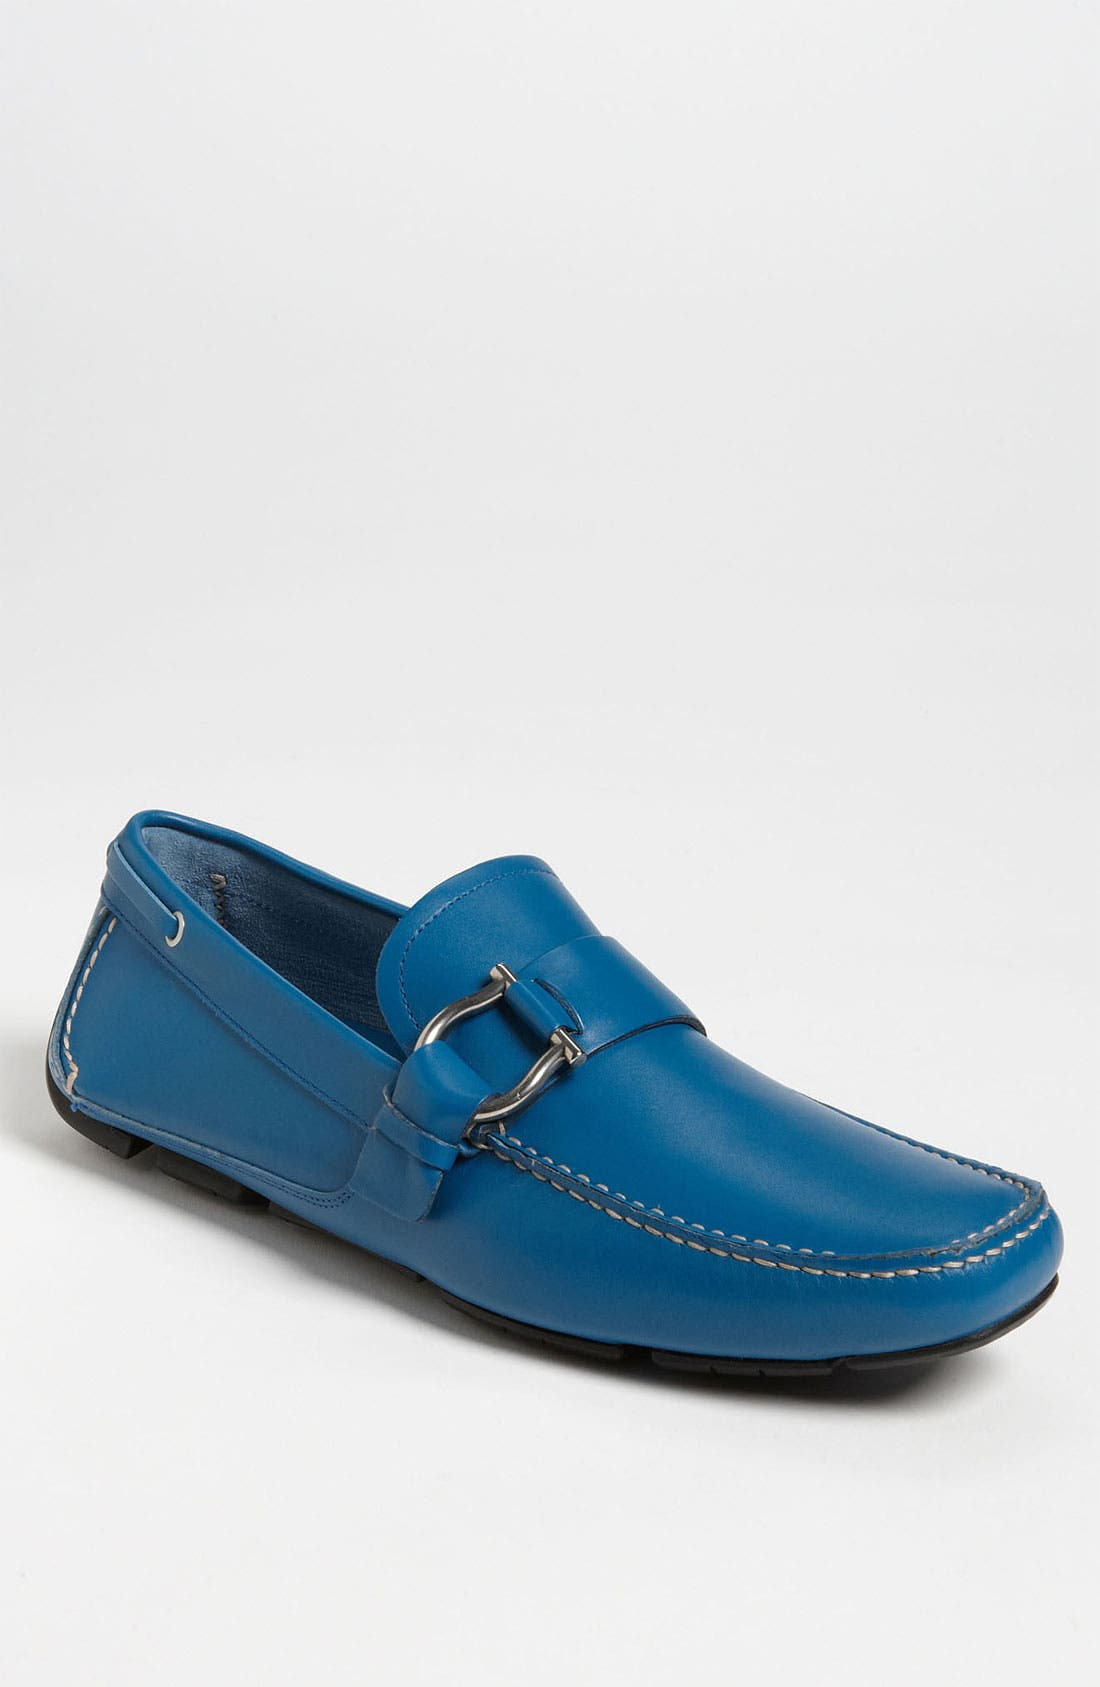 Main Image - Salvatore Ferragamo 'Cabo 2' Driving Shoe